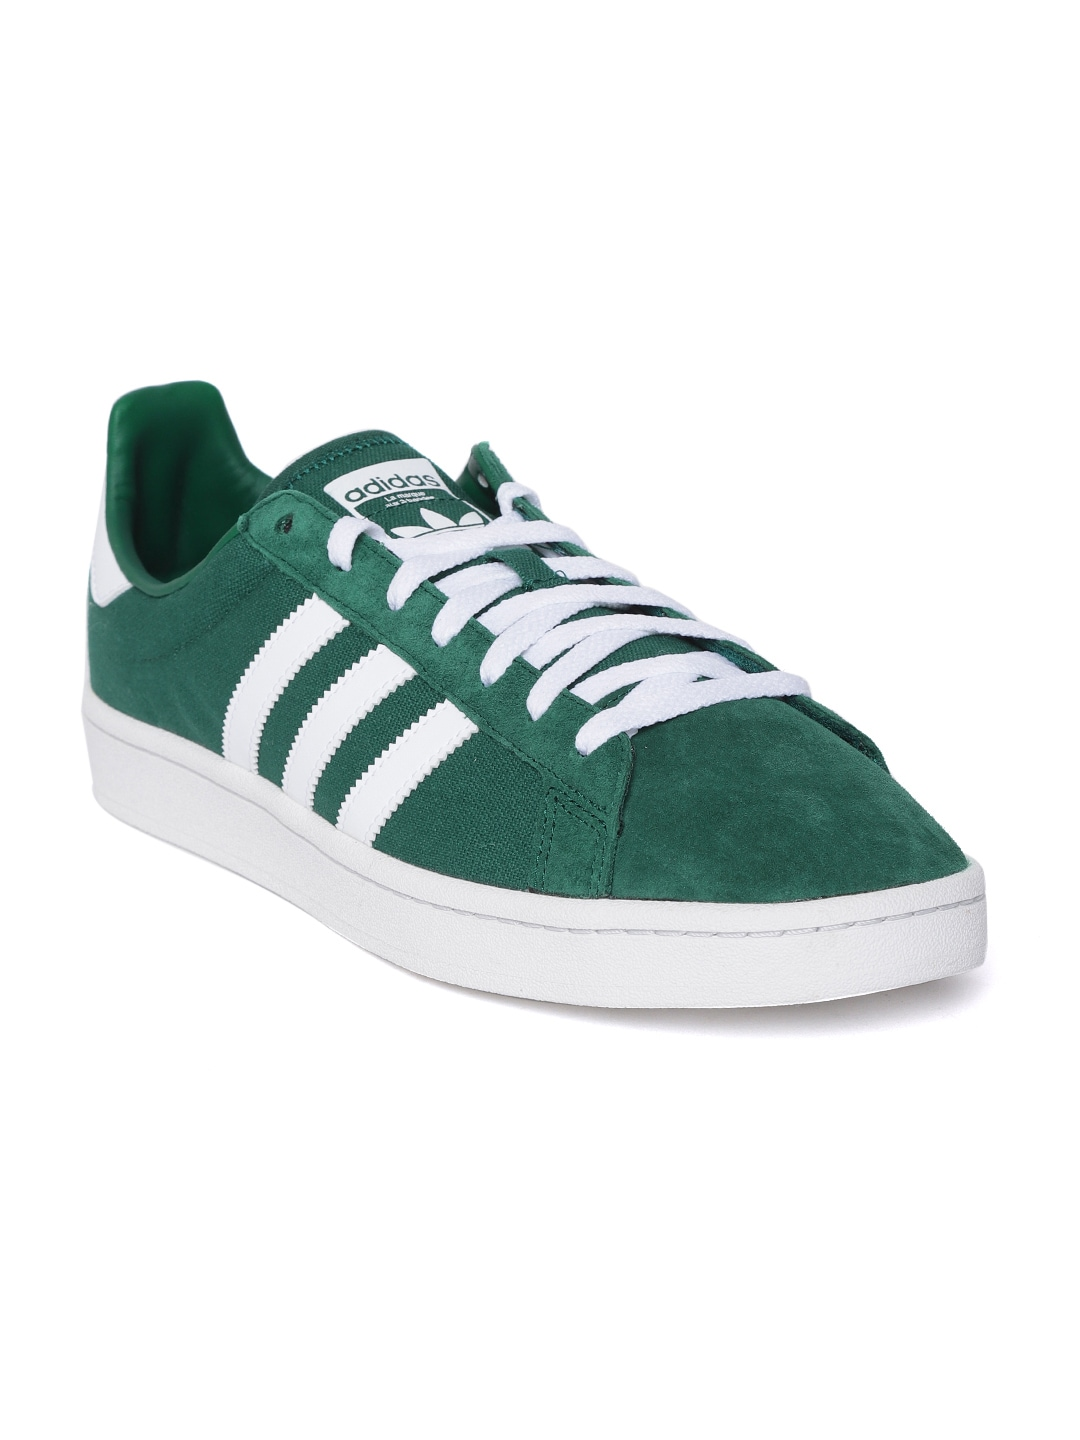 buy popular d3ade 094d2 Adidas Shoes - Buy Adidas Shoes for Men   Women Online - Myntra